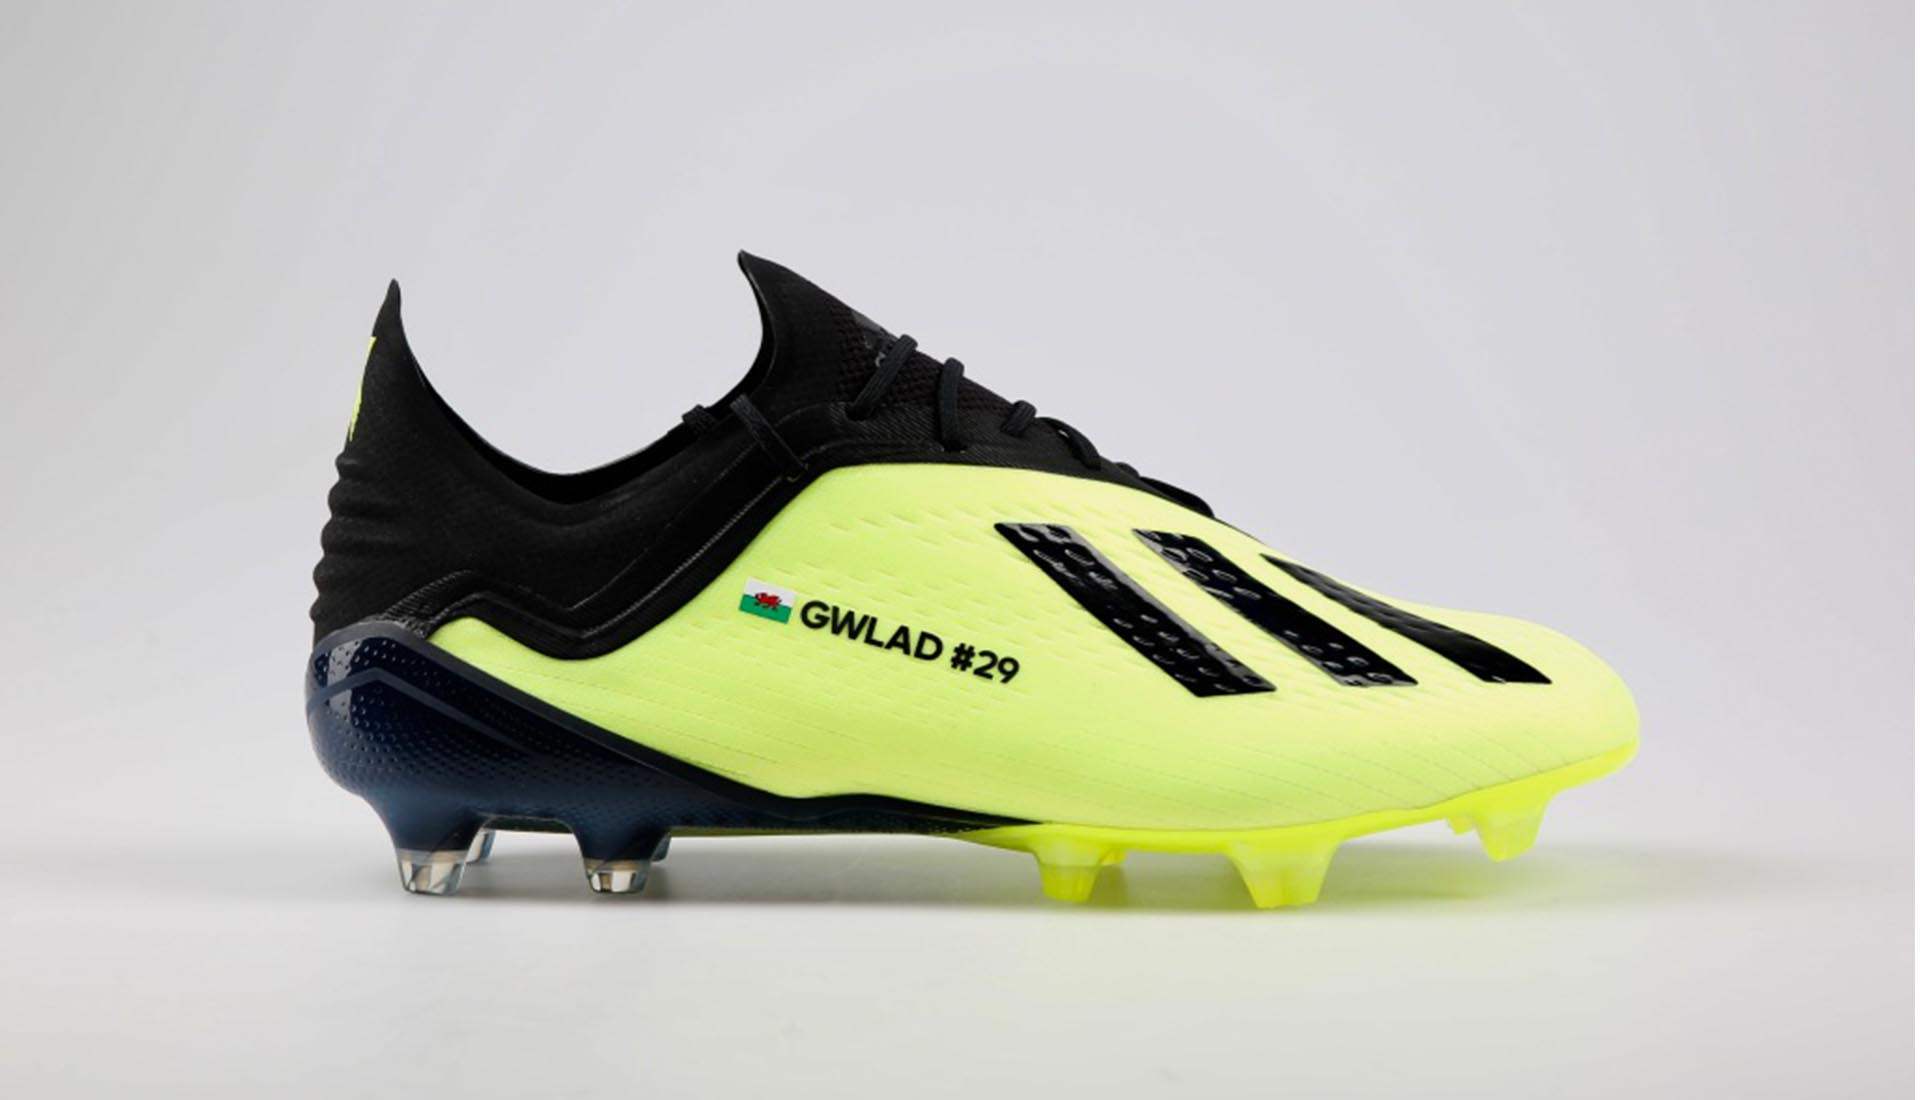 adidas Recognise Bale s Wales Scoring Record With Custom X 18.1 Boots -  SoccerBible. 64bcc2676